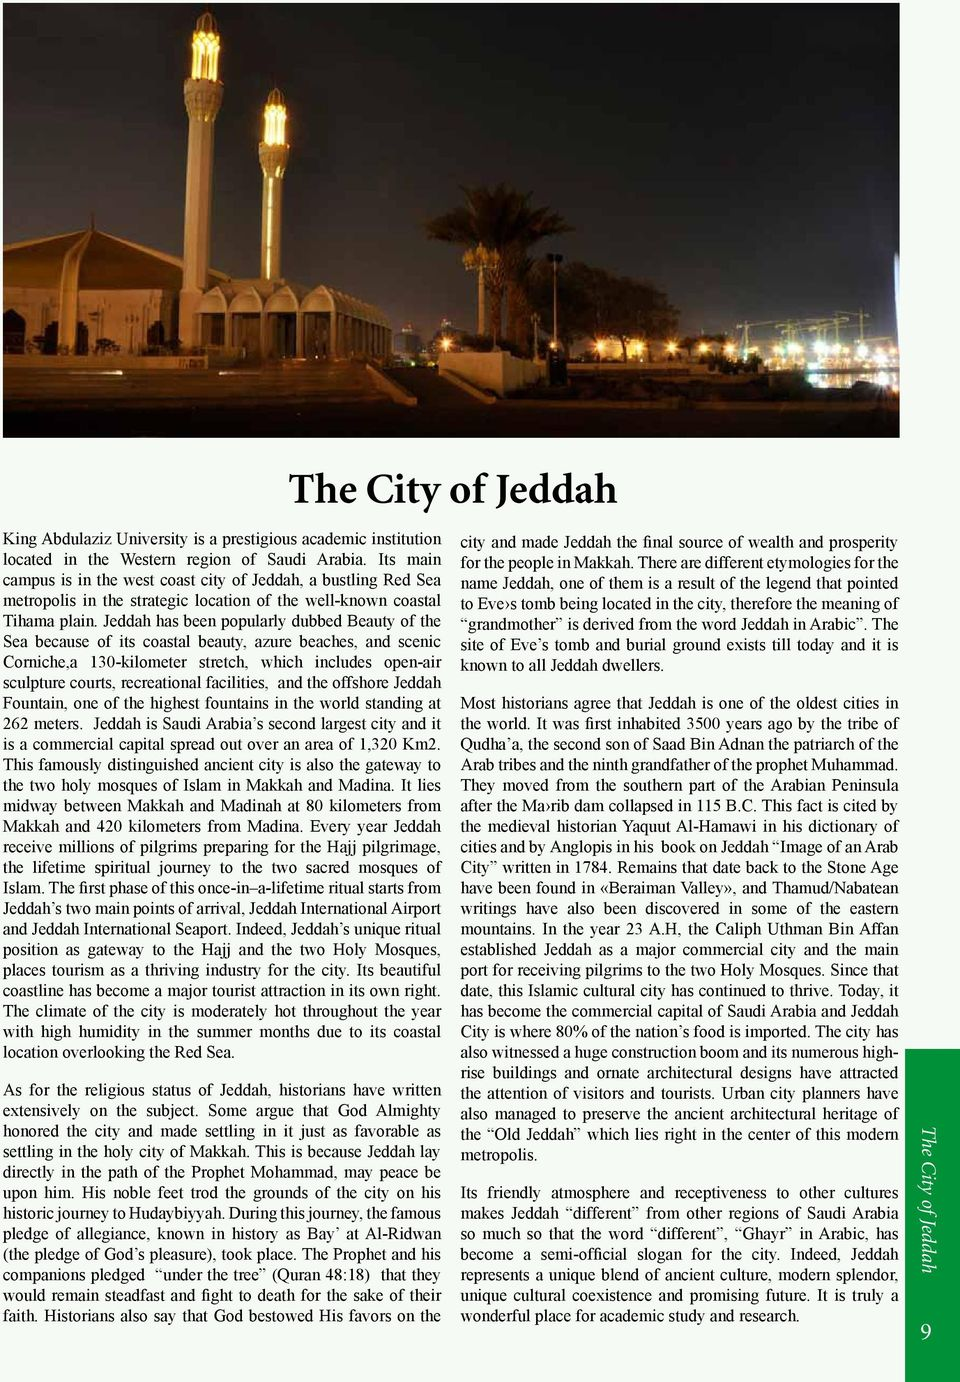 Jeddah has been popularly dubbed Beauty of the Sea because of its coastal beauty, azure beaches, and scenic Corniche,a 130-kilometer stretch, which includes open-air sculpture courts, recreational